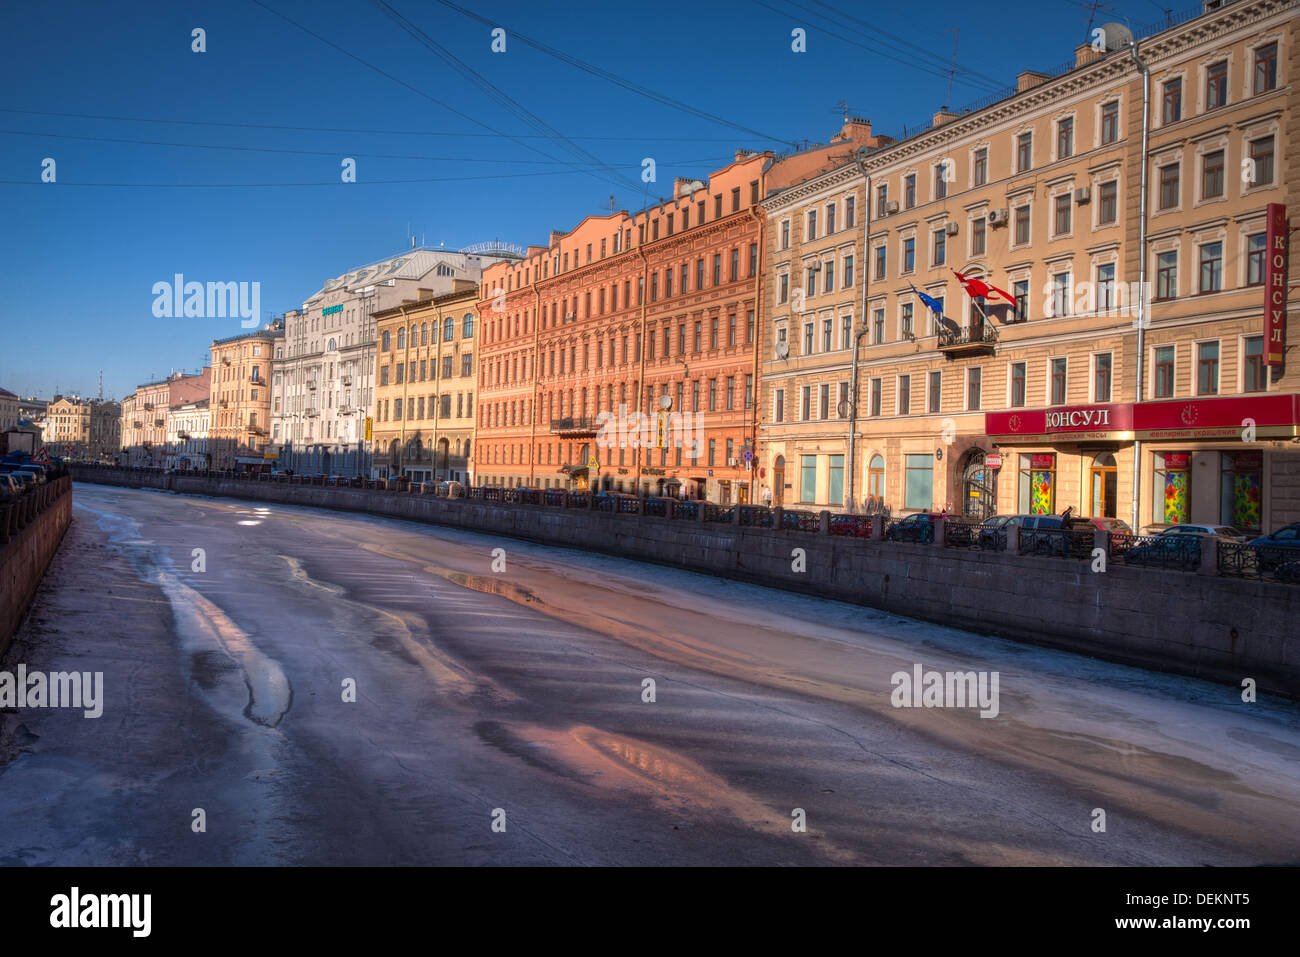 Late evening rays and a frozen canal in St. Petersburg - Stock Image